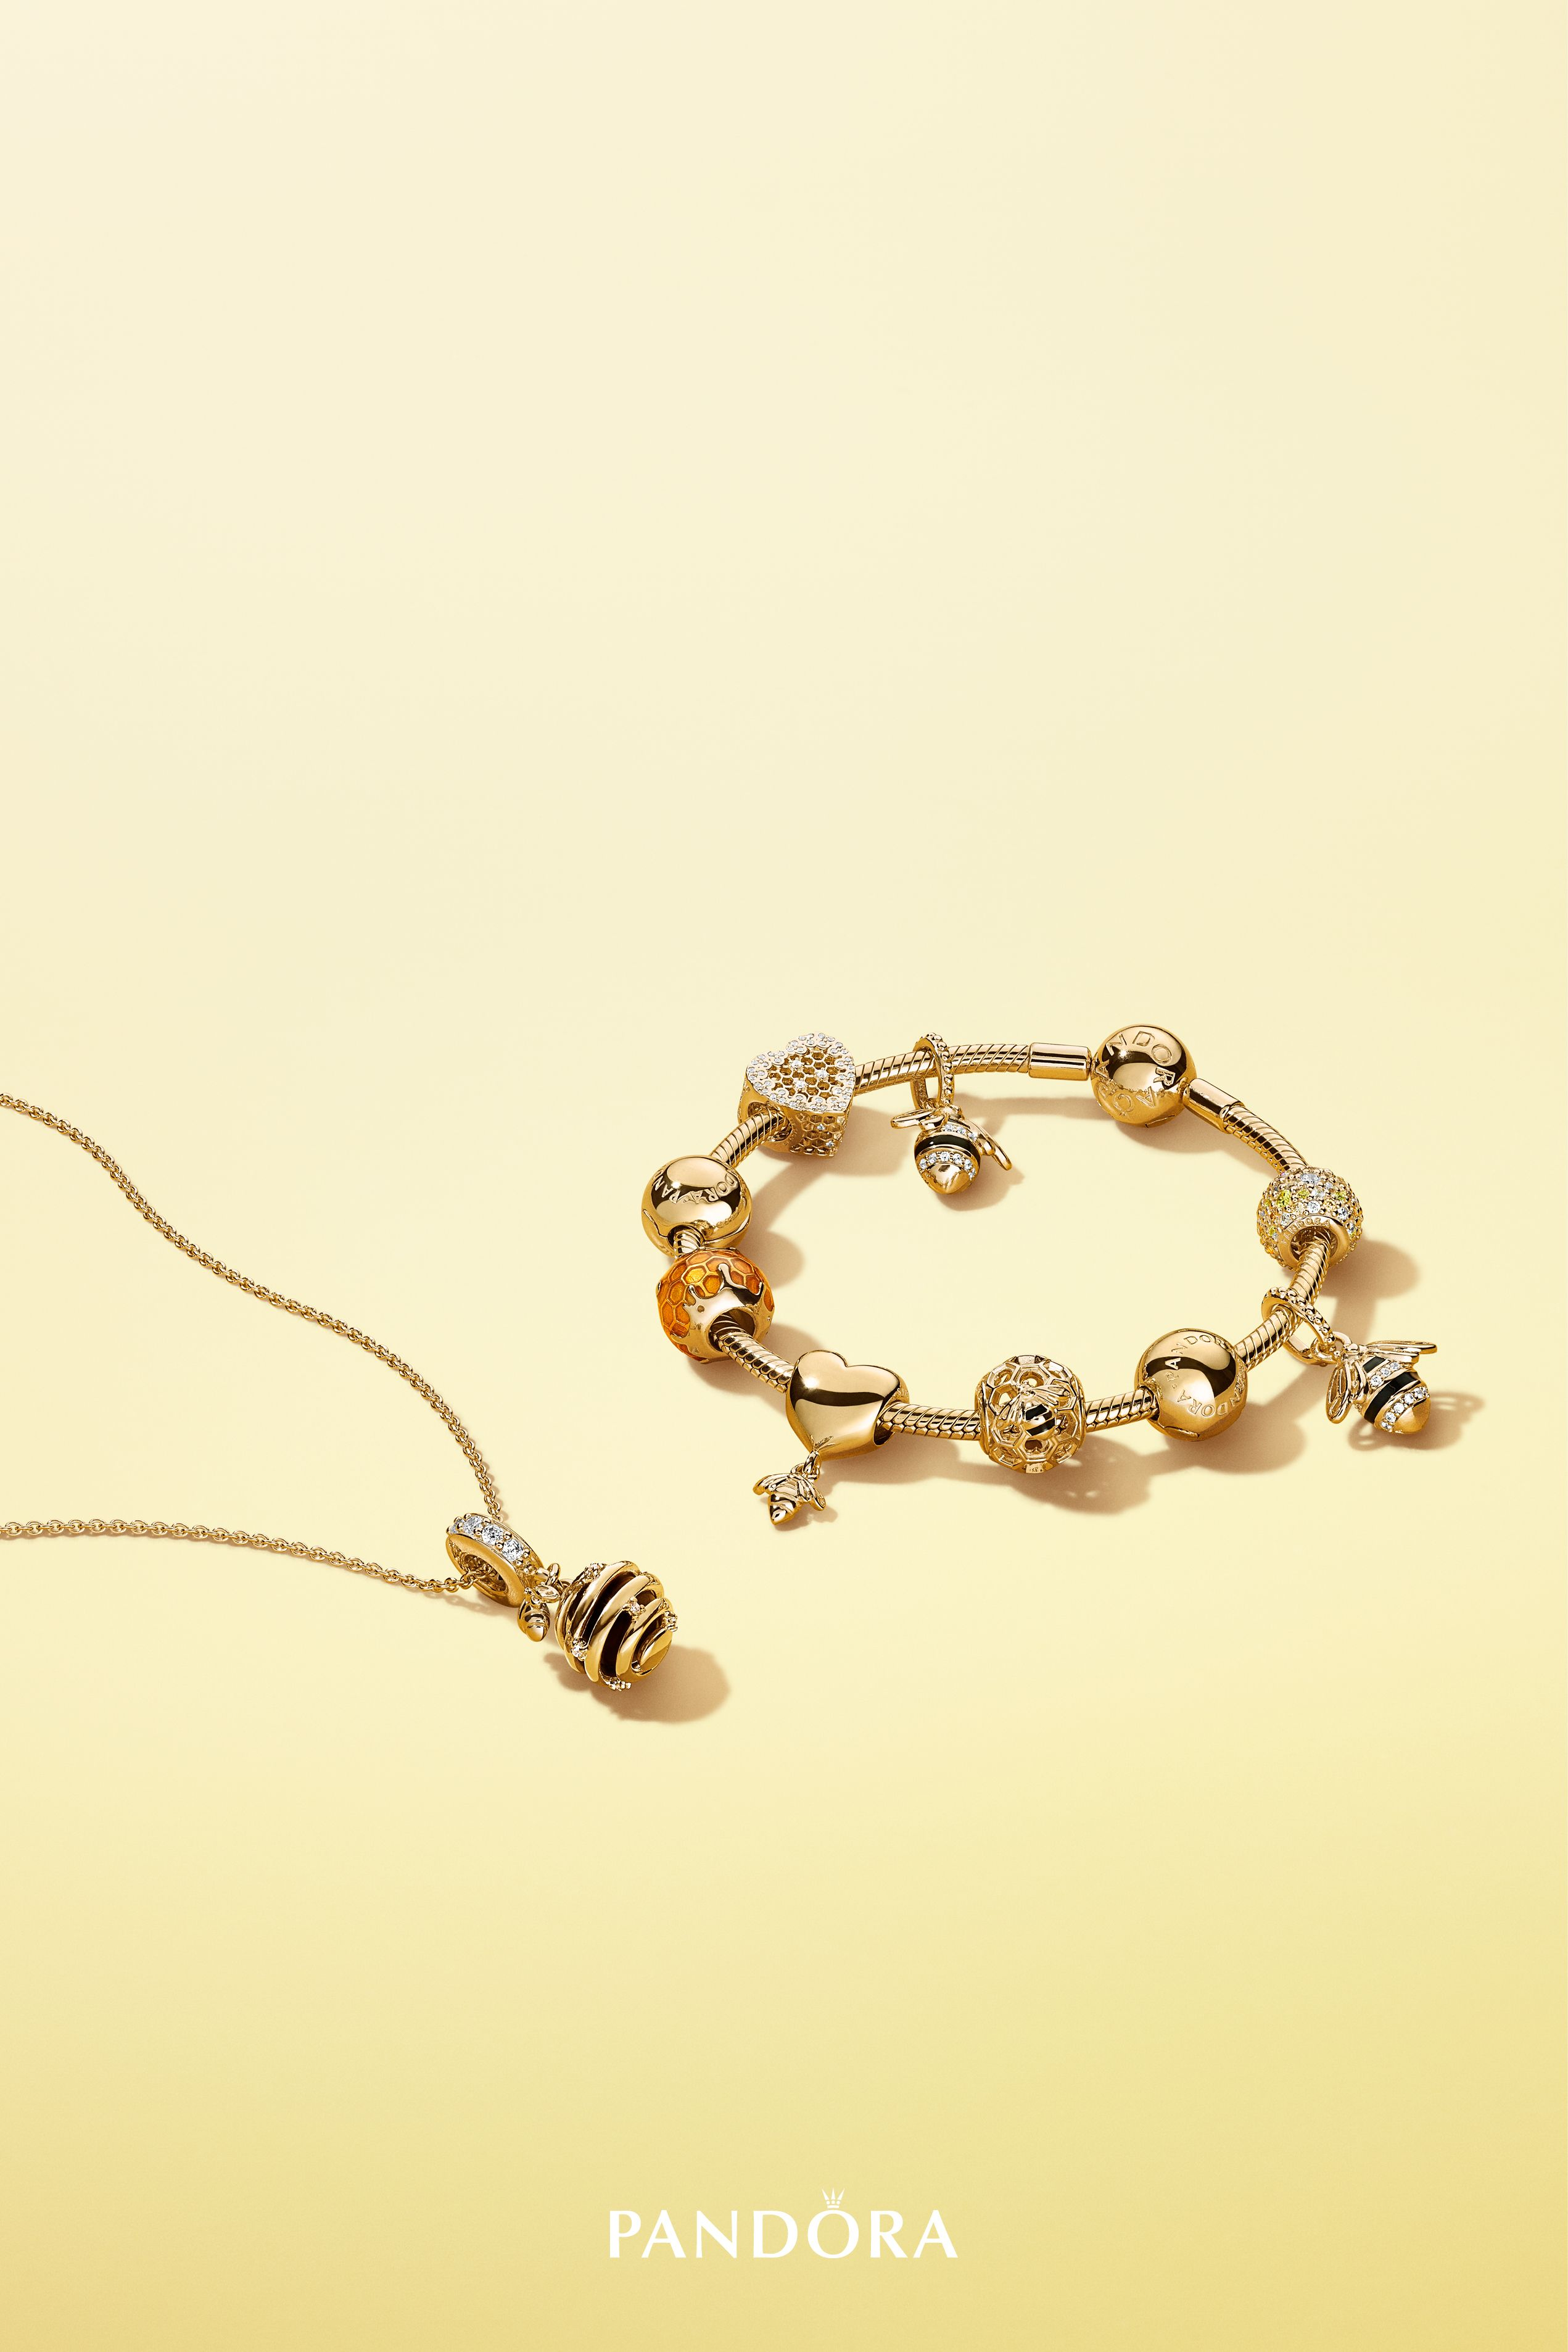 Just in new beeinspired charms in pandora shine our stunning k